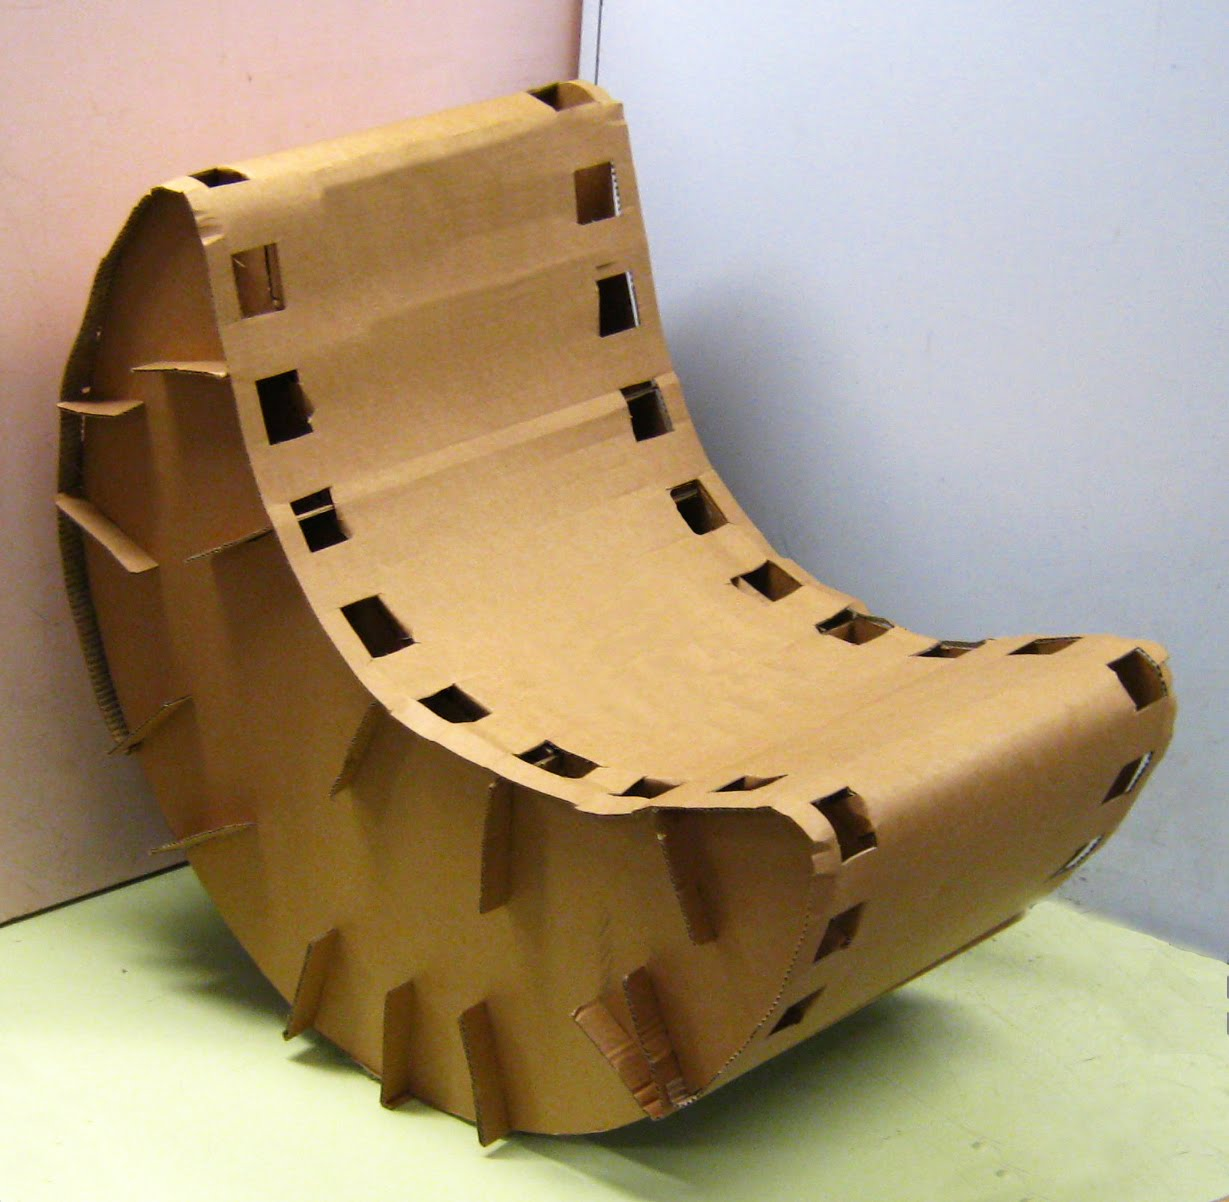 How To Make A Cardboard Chair Liberal Iguana Cardboard Chair Project